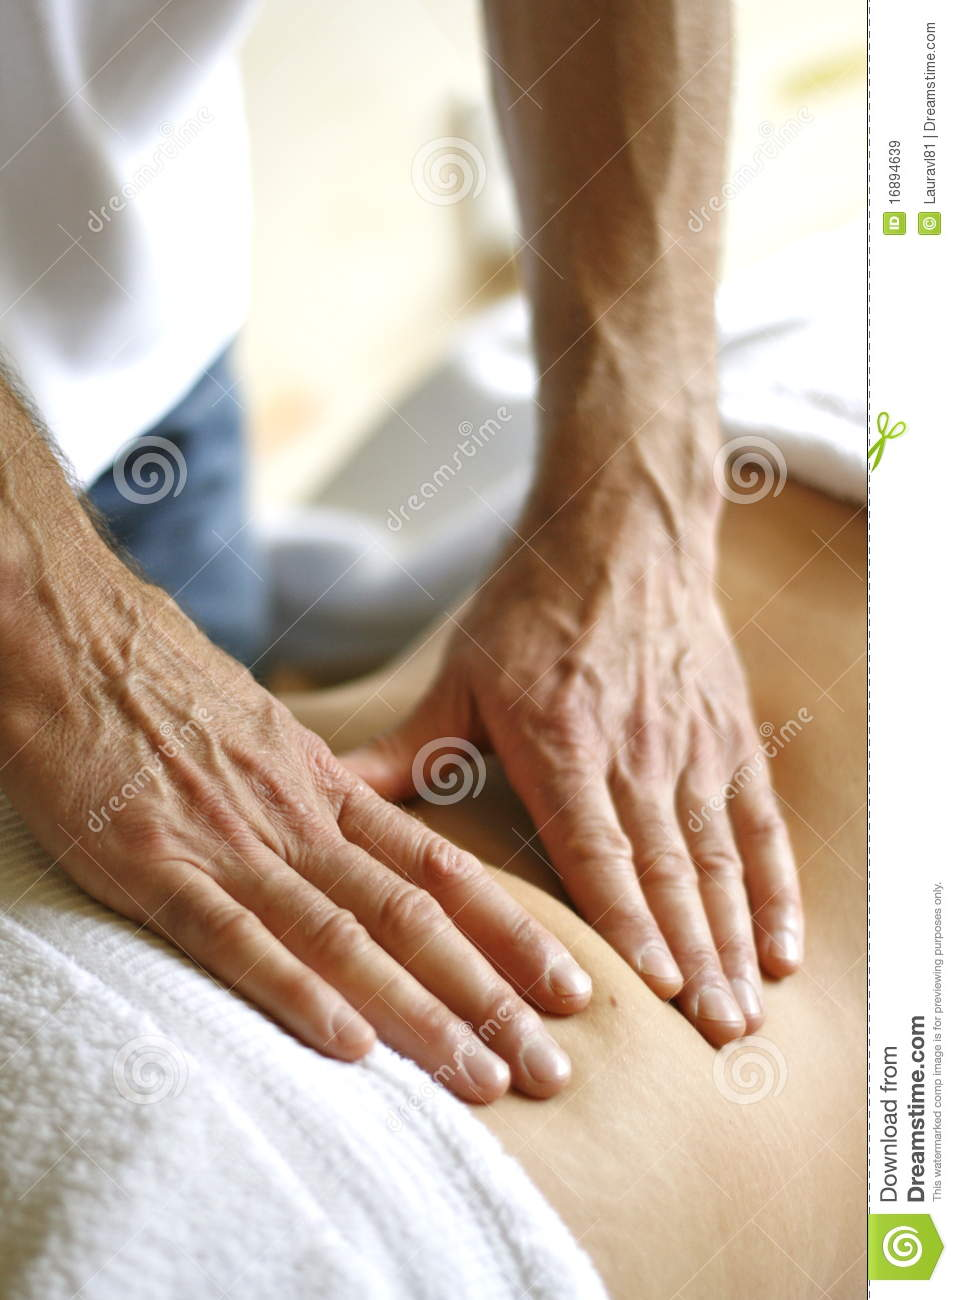 Masseur Search http://www.dreamstime.com/royalty-free-stock-images-masseur-image16894639